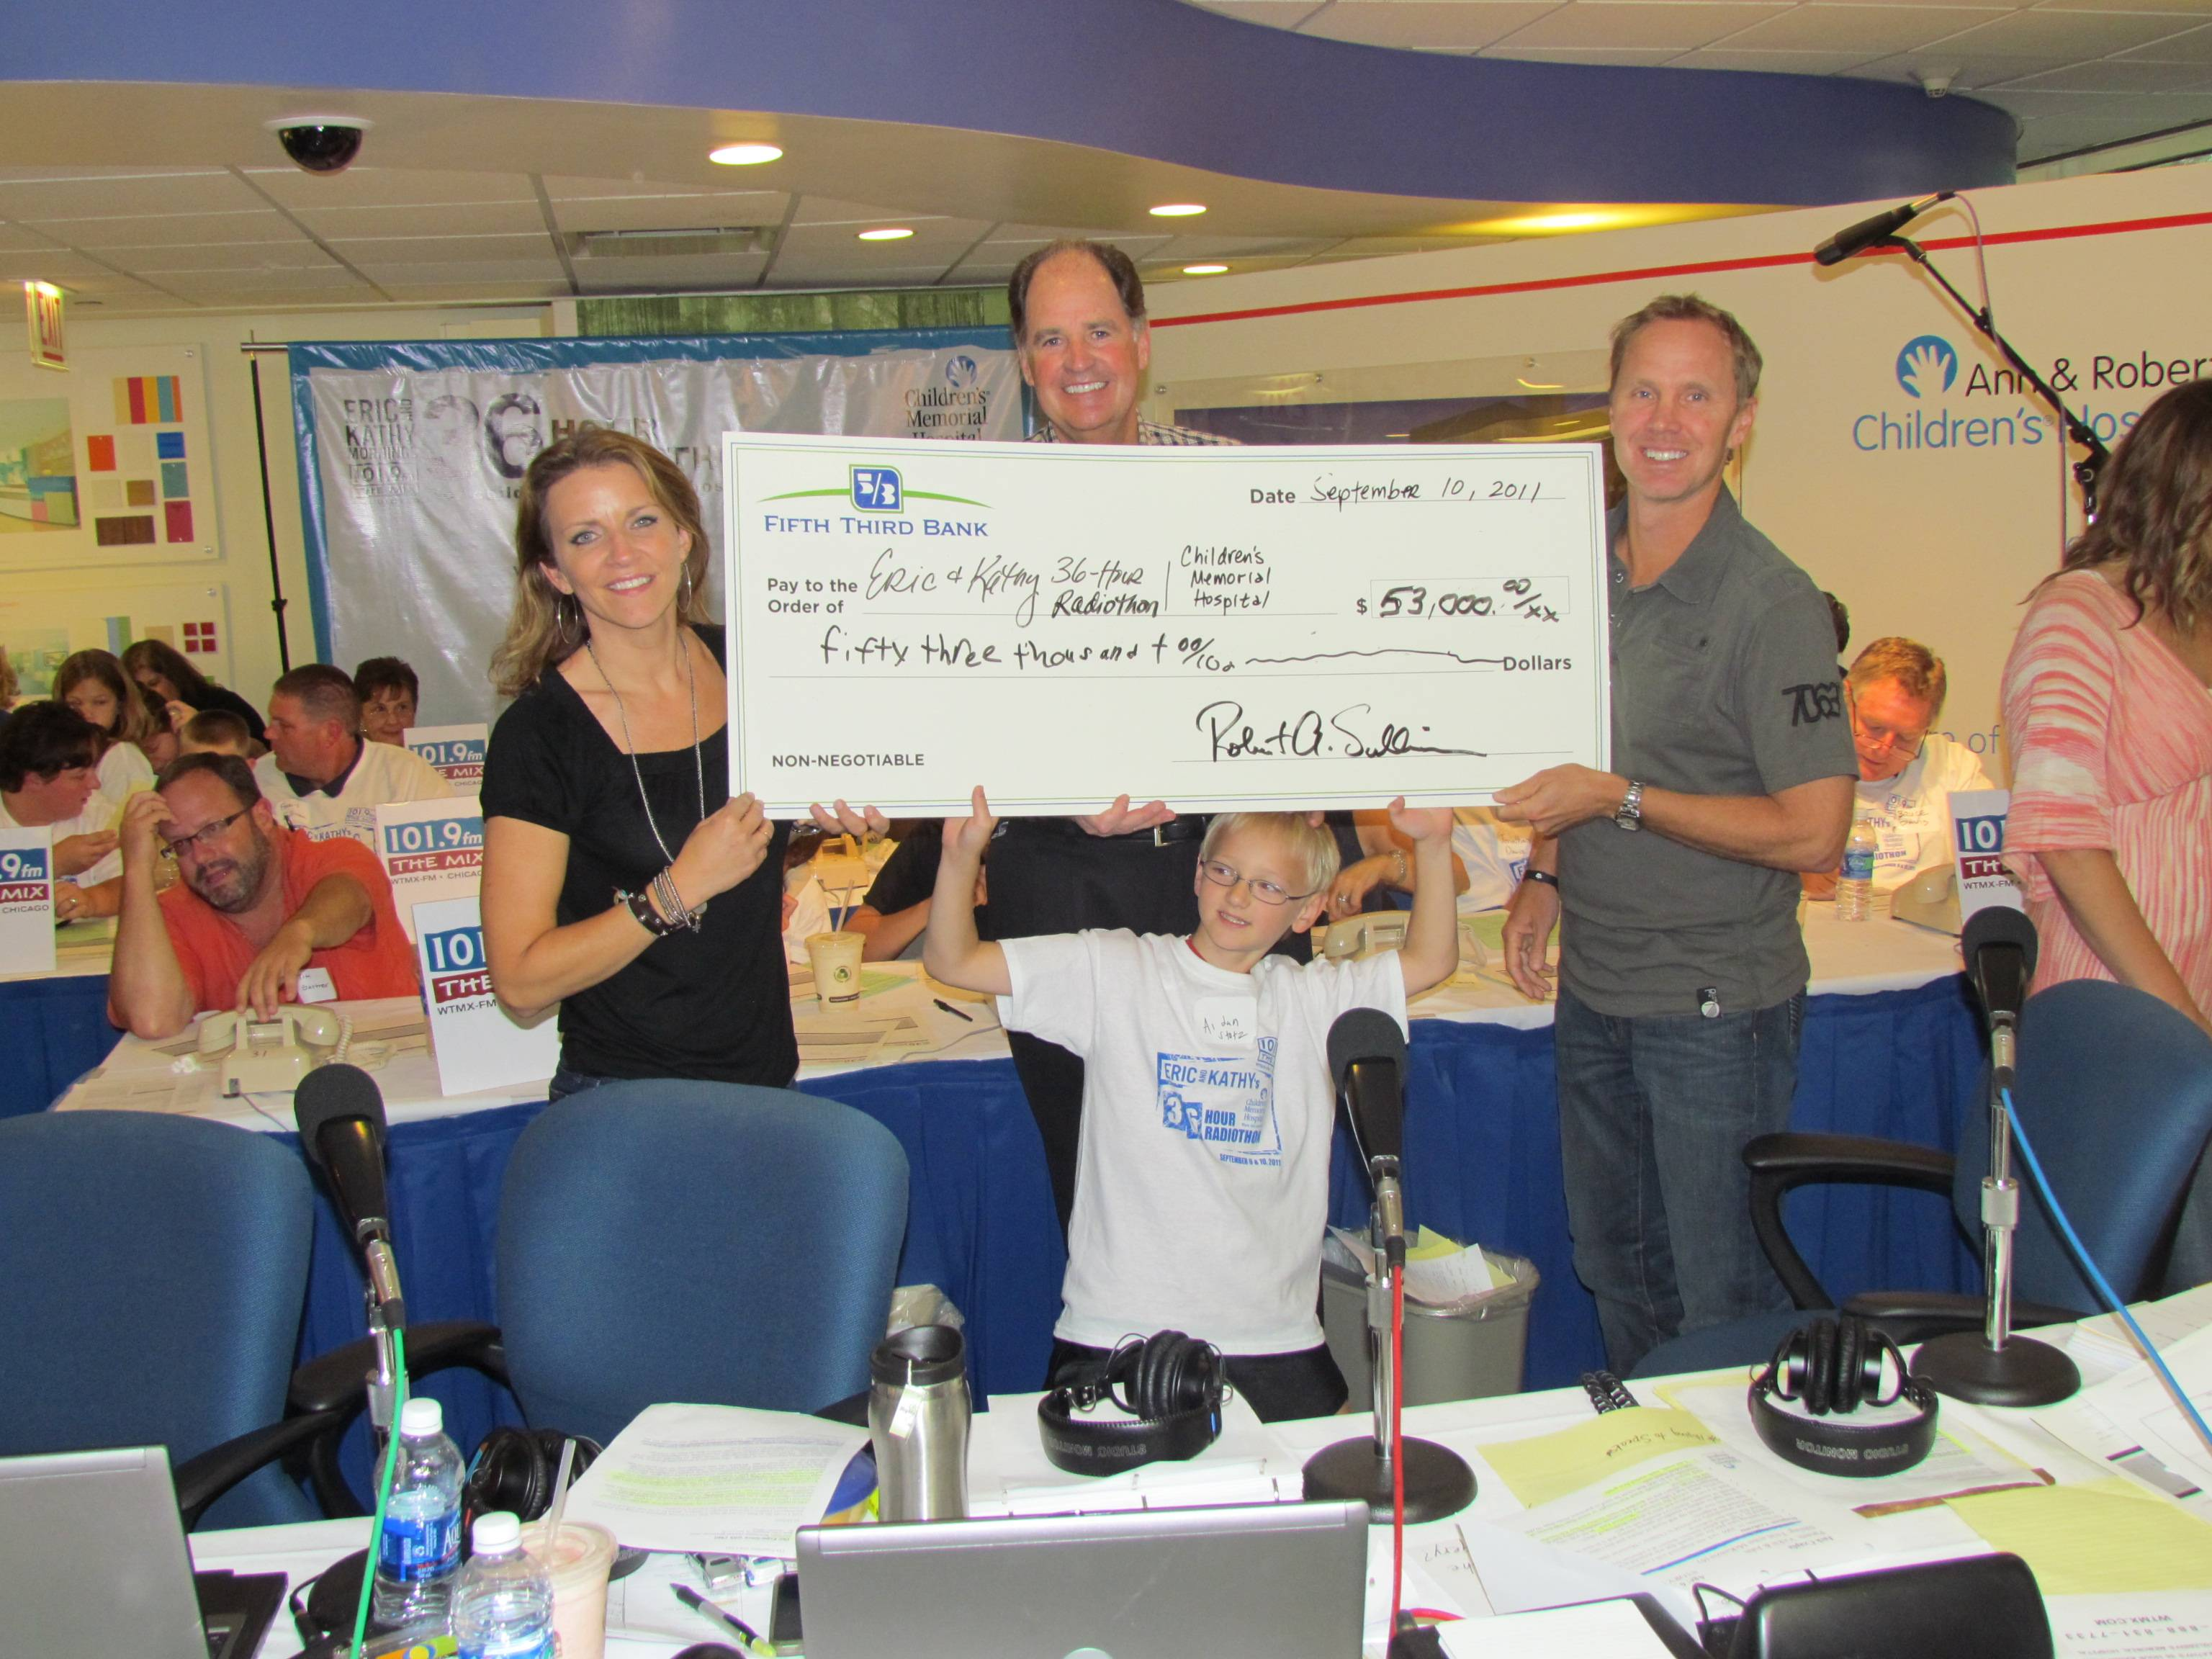 Bob Sullivan, Presidenet & CEO, Fifth Third Bank president (in center) presents a check for $53,000 to radio duo Eric & Kathy in 2011.